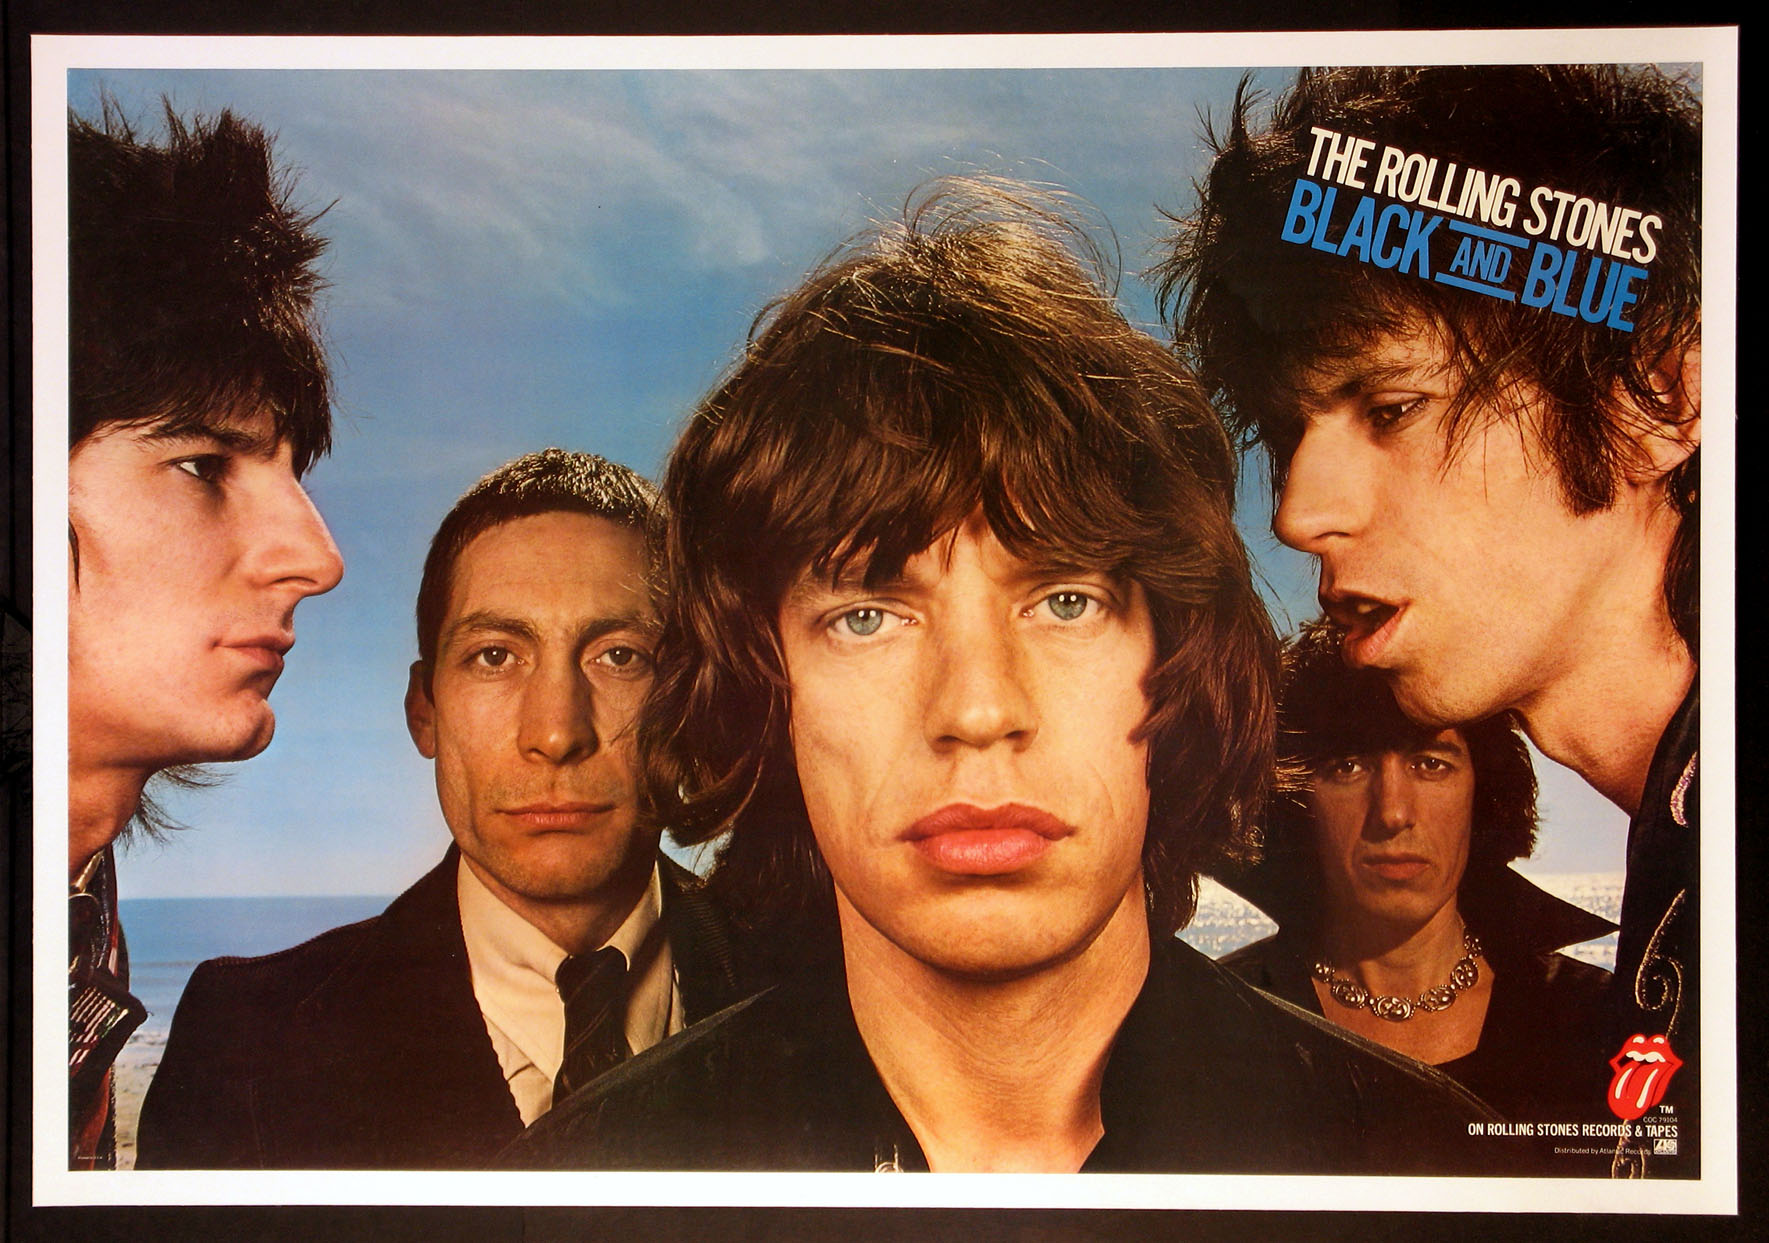 ROLLING STONES BLACK AND BLUE ALBUM PROMOTIONAL POSTER @ FilmPosters.com